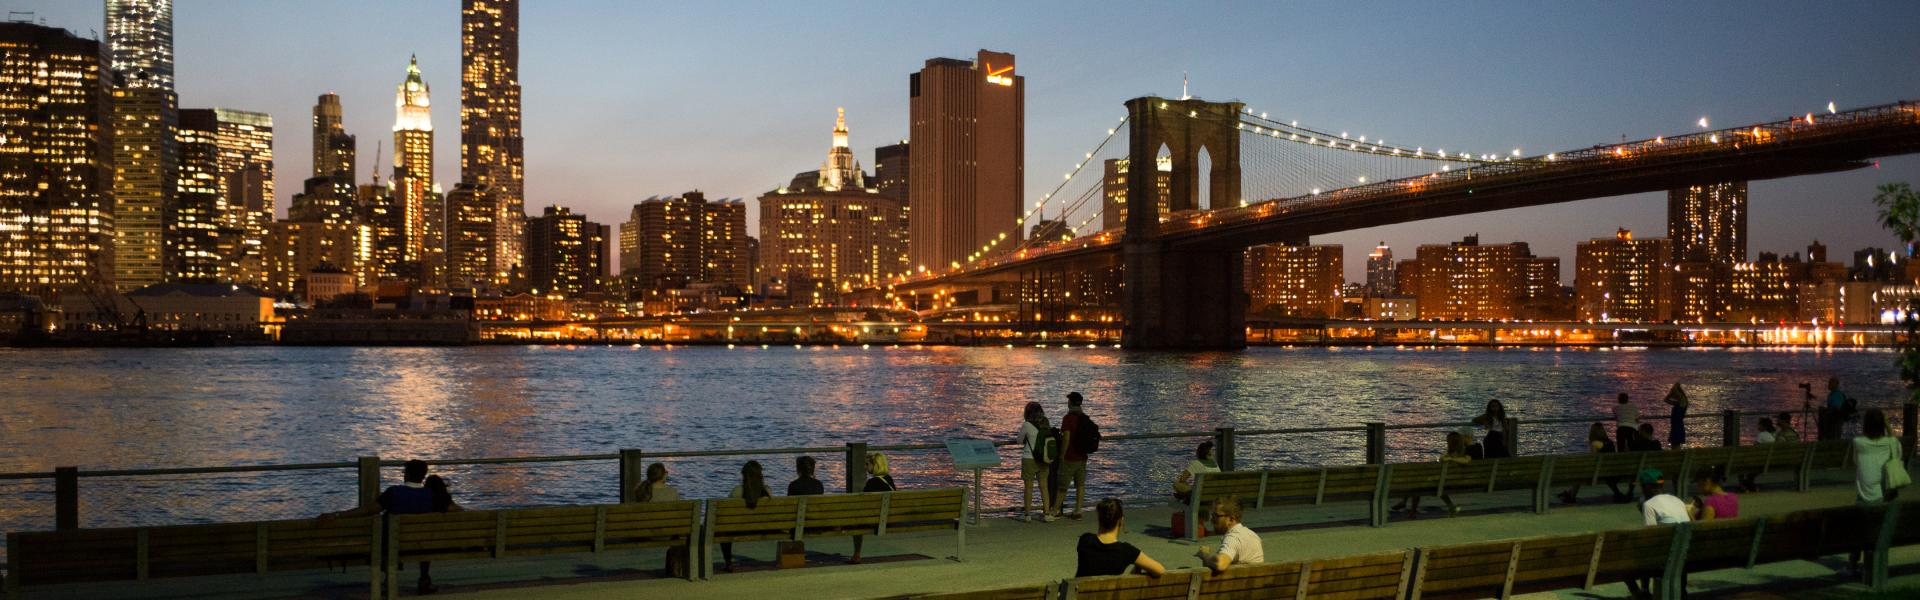 Brooklyn Bridge Park, Skyline, Evening